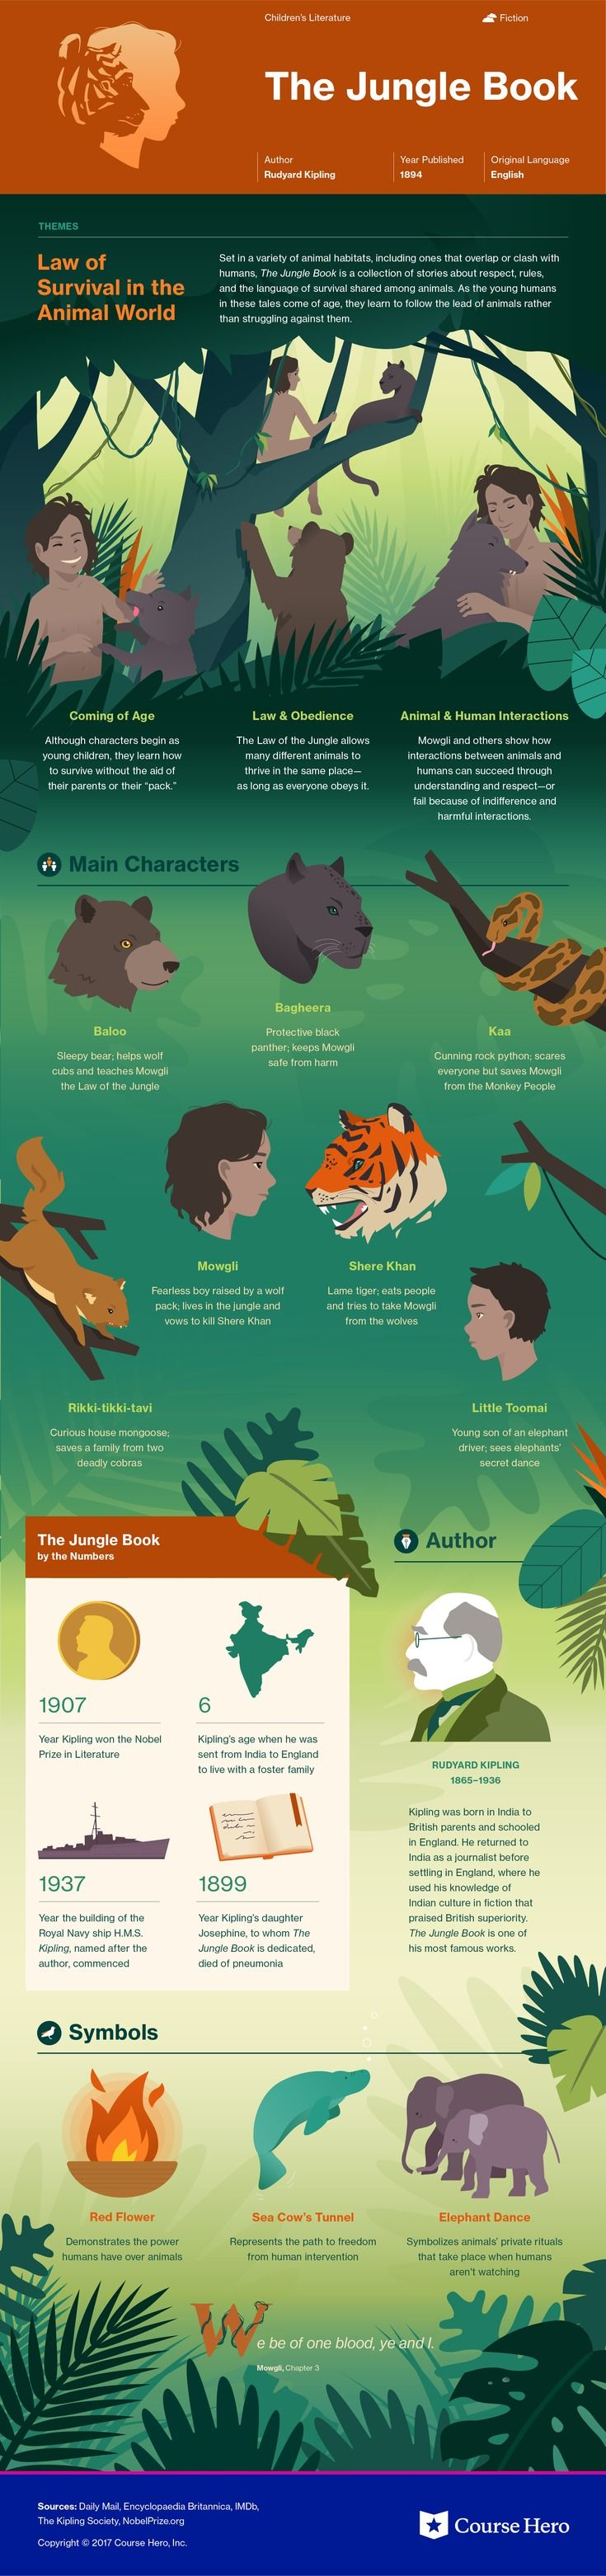 This @CourseHero infographic on The Jungle Book is both visually stunning and informative!